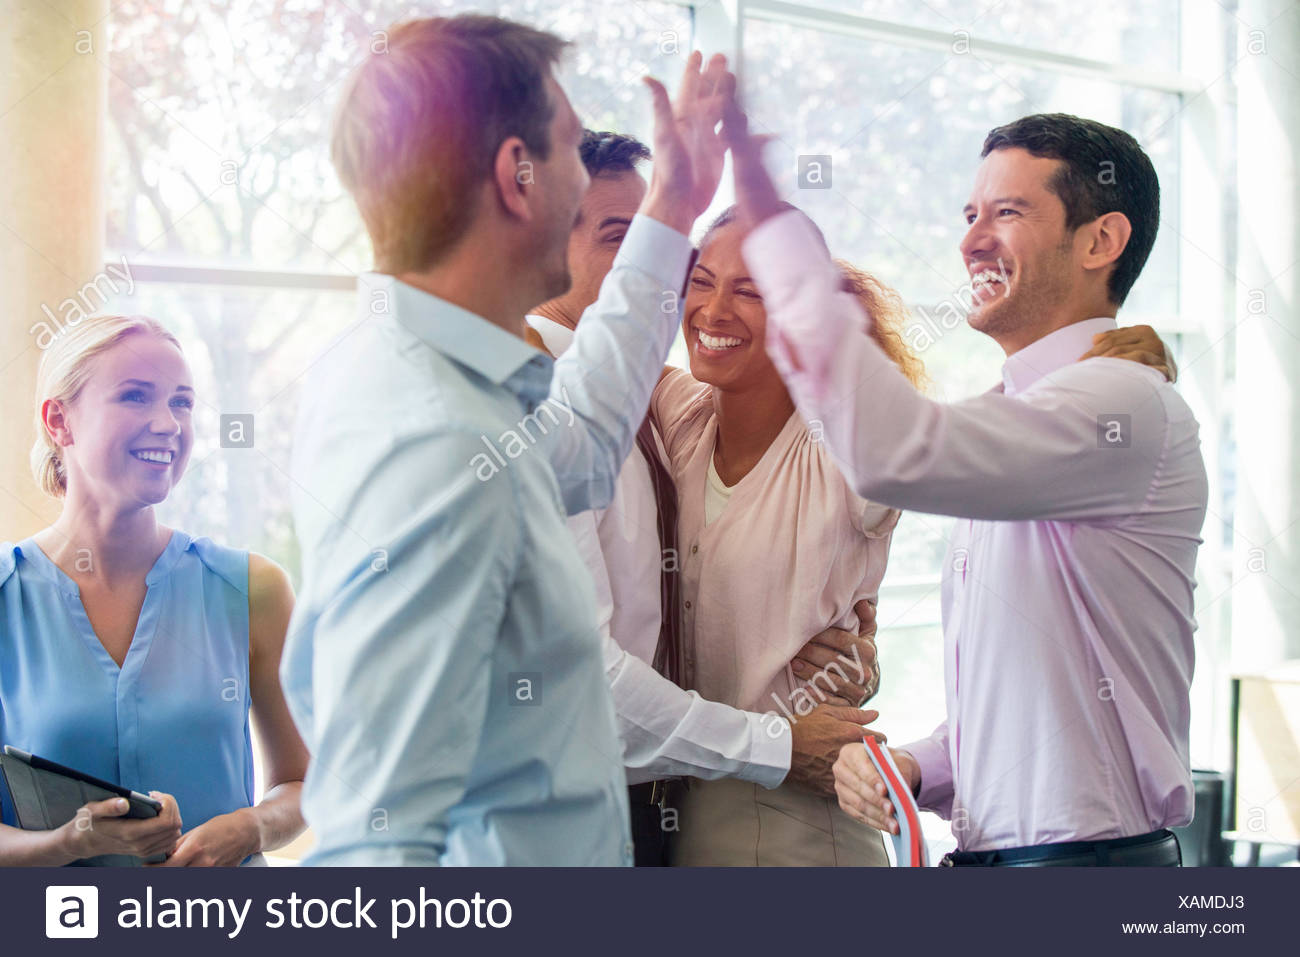 Colleagues giving each other high-five - Stock Image